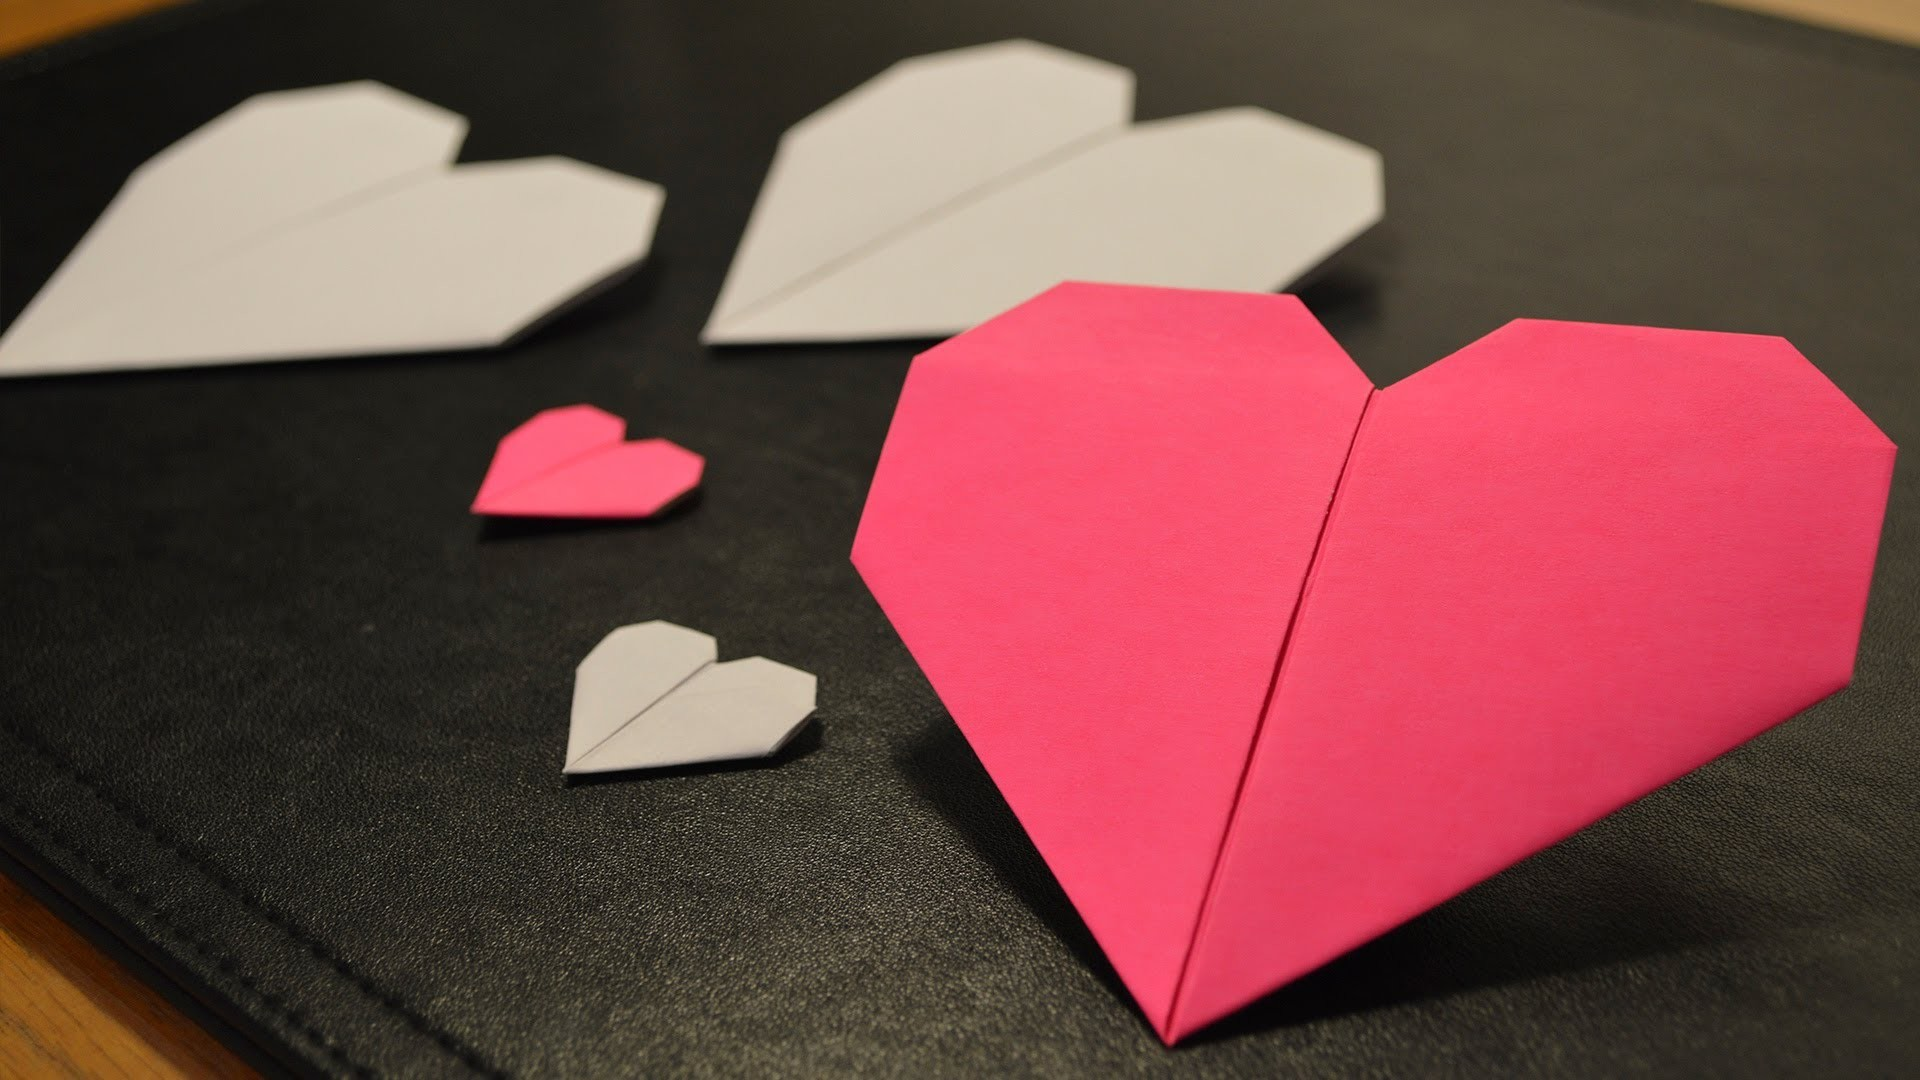 How to make origami heart to express love | Origami Handmade